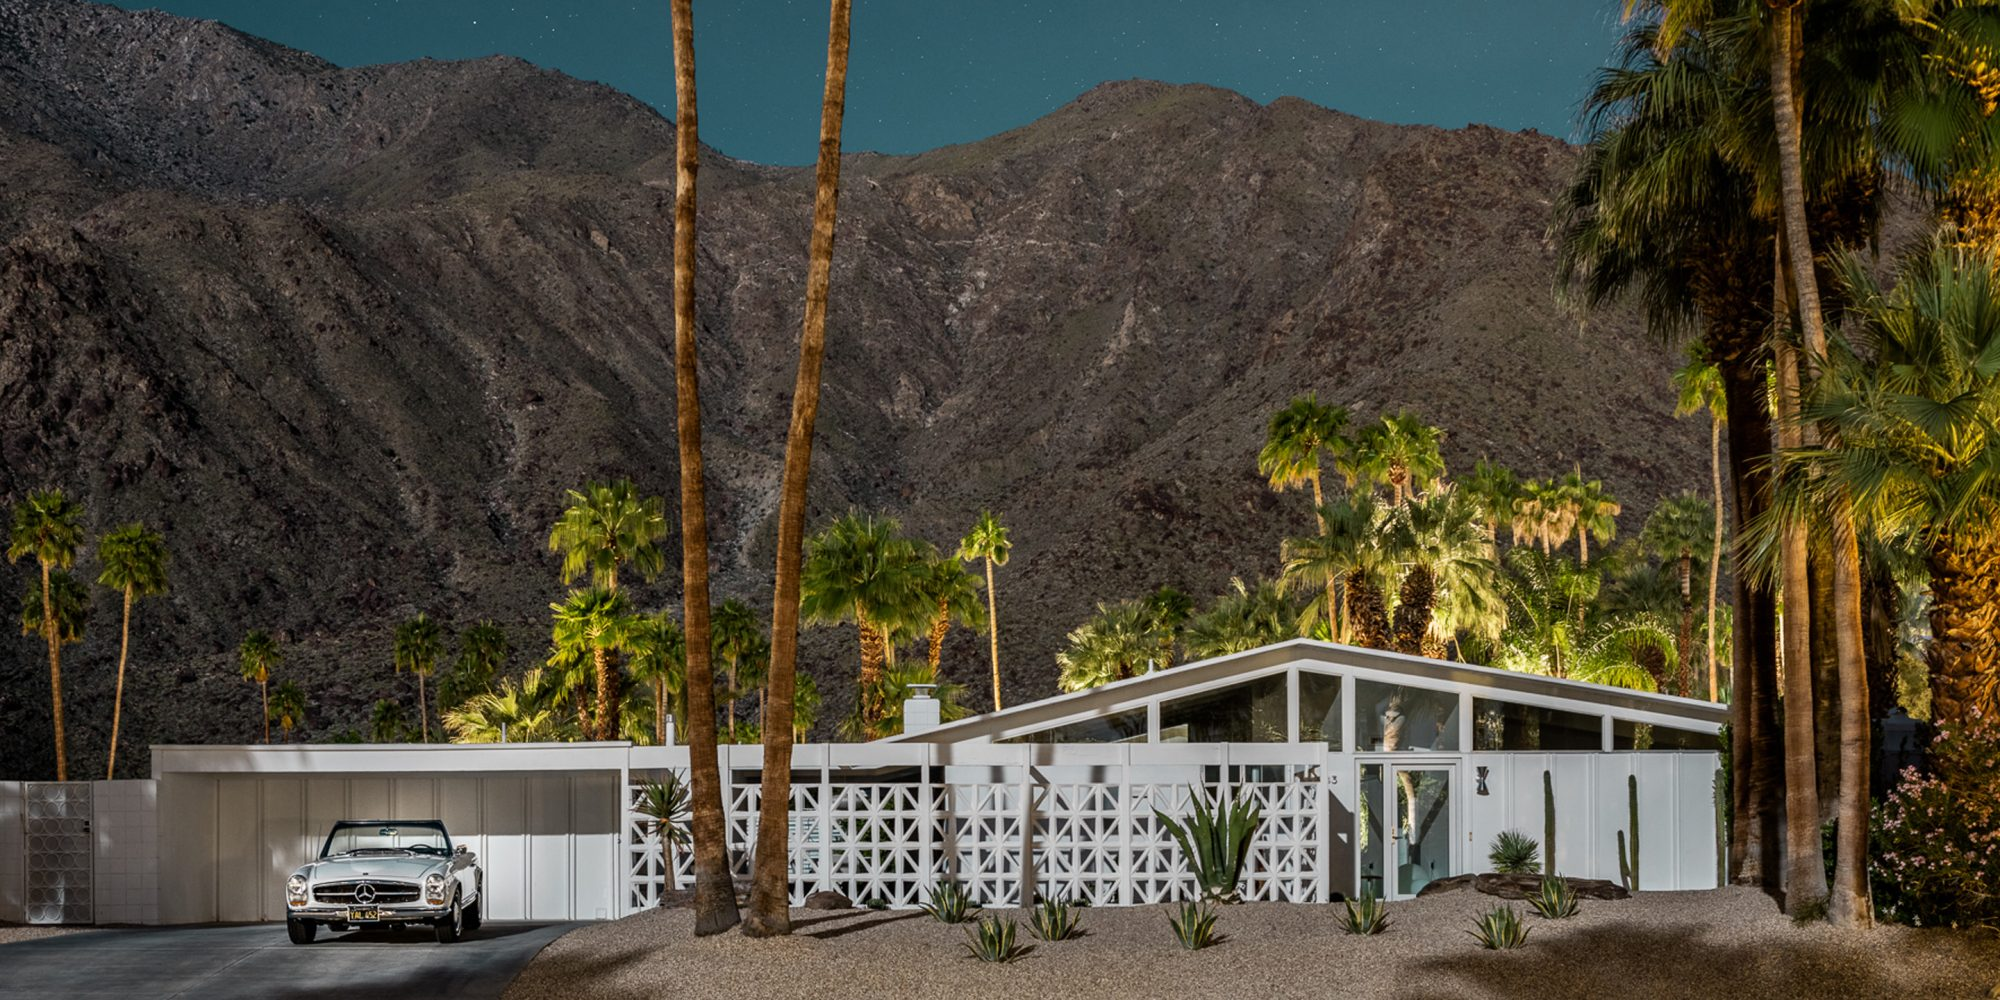 Razno - Page 2 Here-s-palm-springs-in-all-its-nighttime-glory-1476933927801-2000x1000